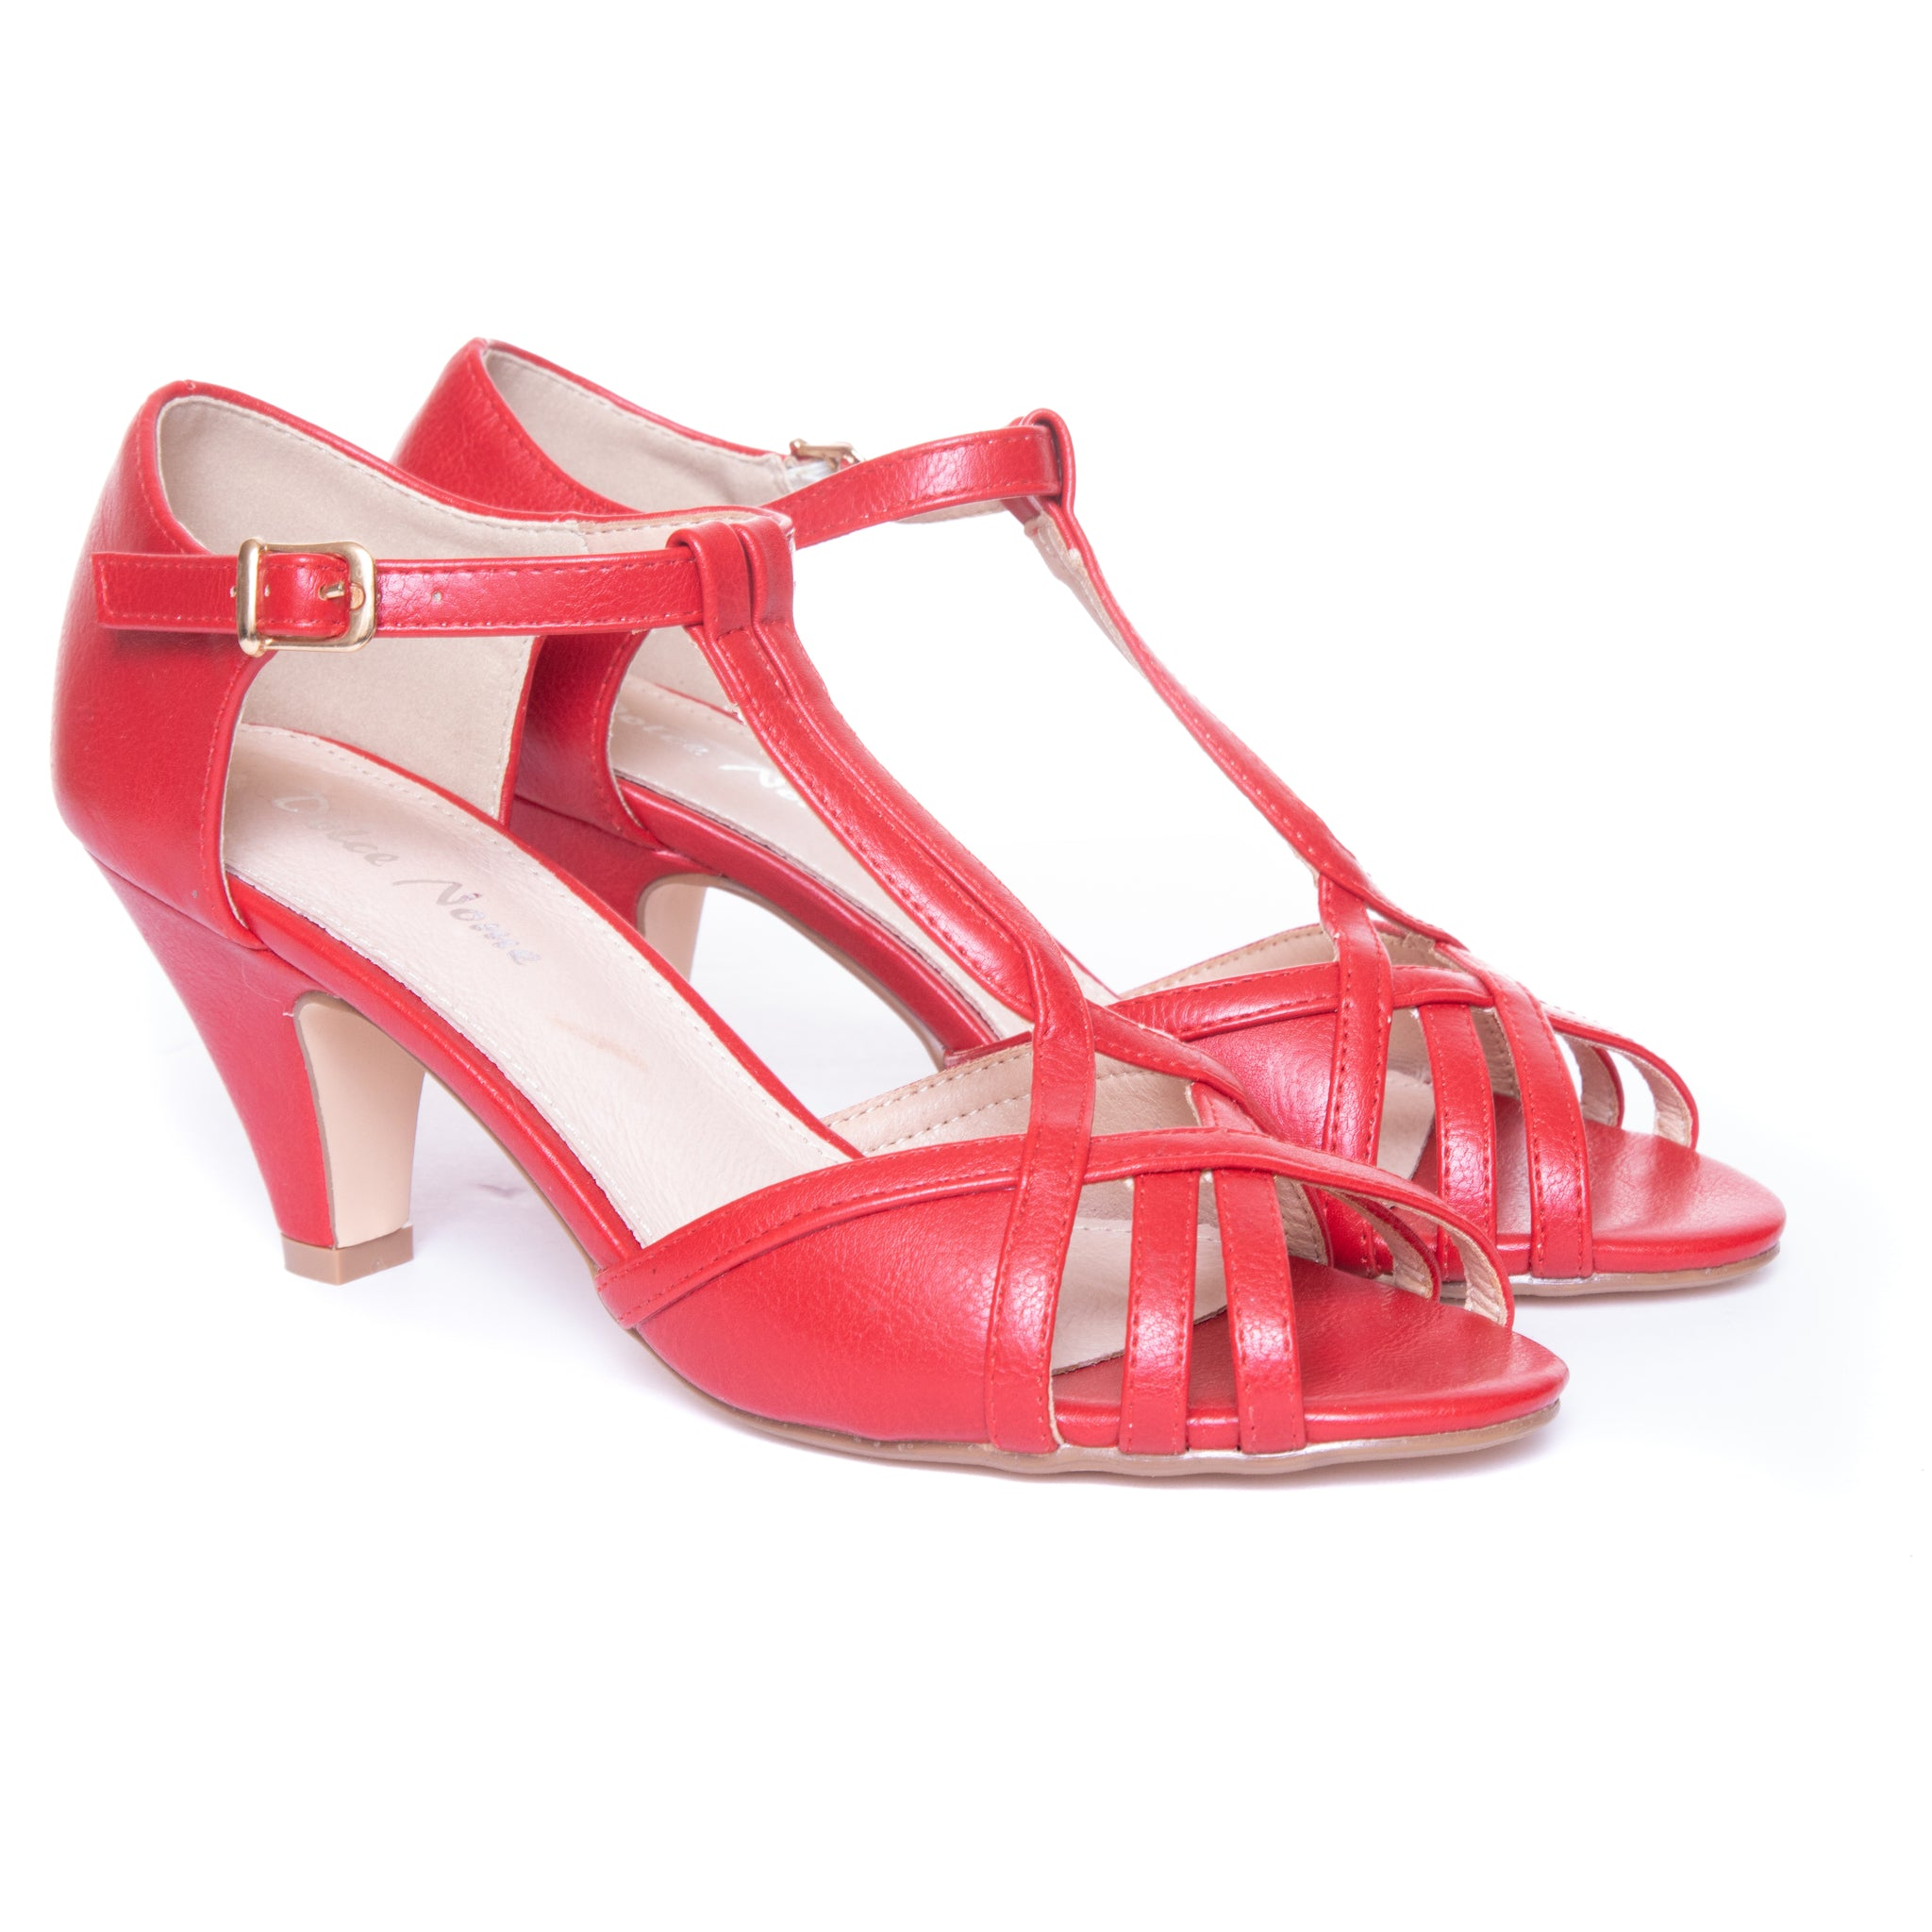 Becca by Dolce Nome | Open Toe Heel Sandals in Red (pair view)